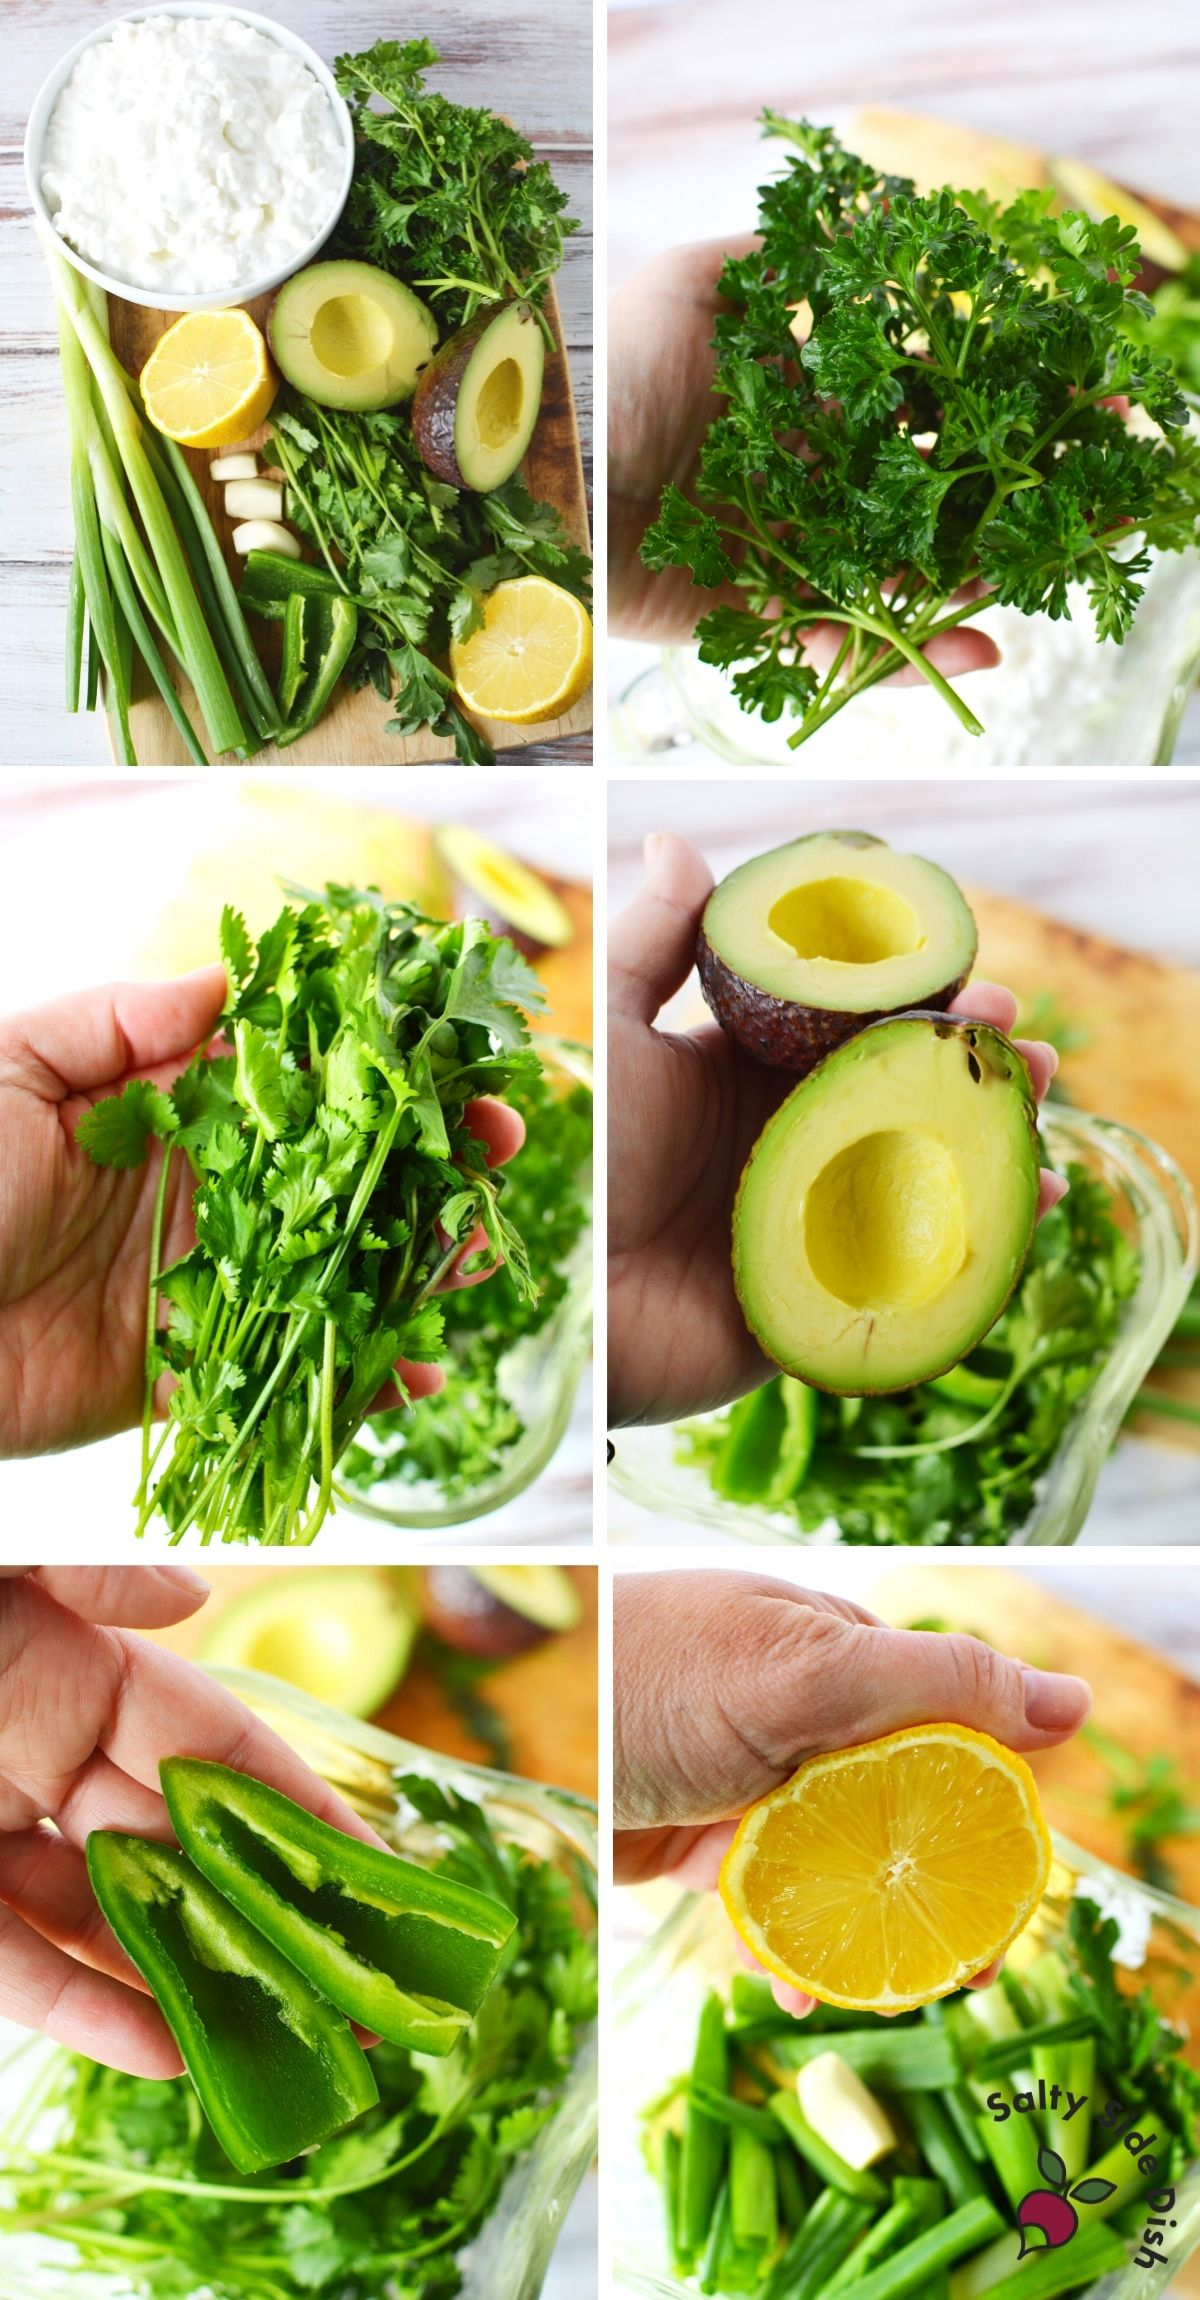 showing all green goddess ingredients in a blender